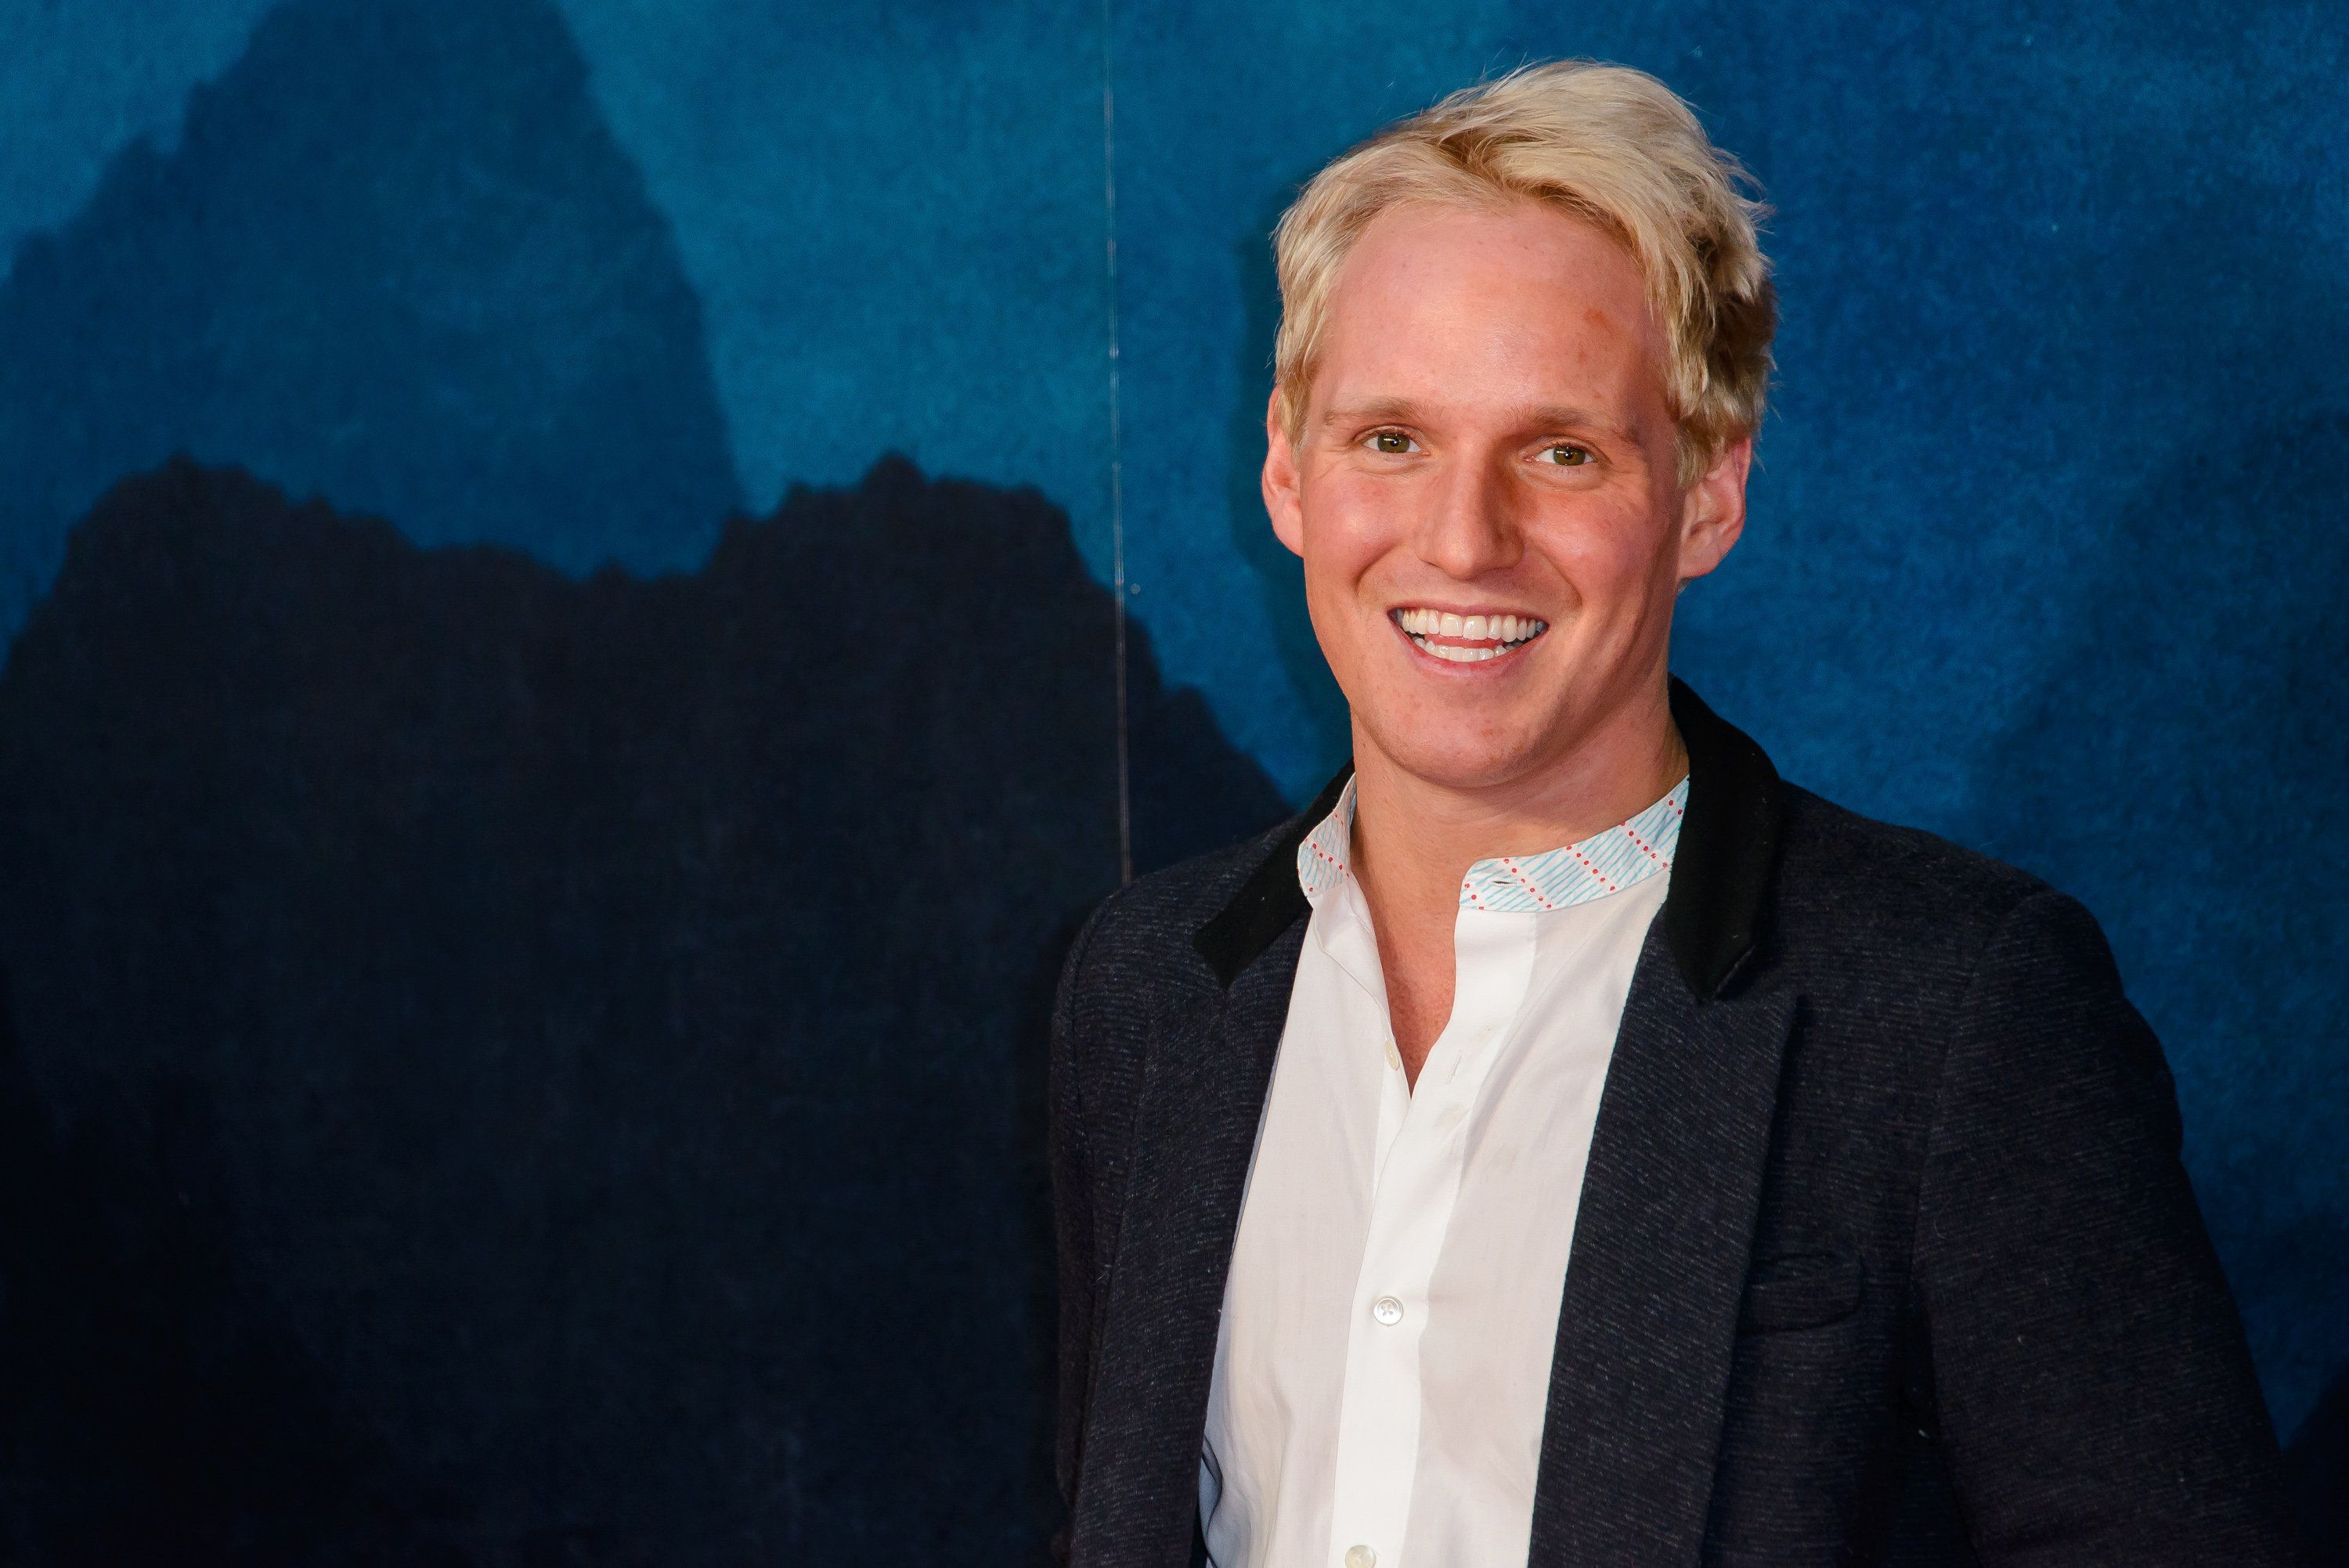 Jamie Laing Claims 'Made In Chelsea' Lost Its Way, Becoming Too 'Dark And